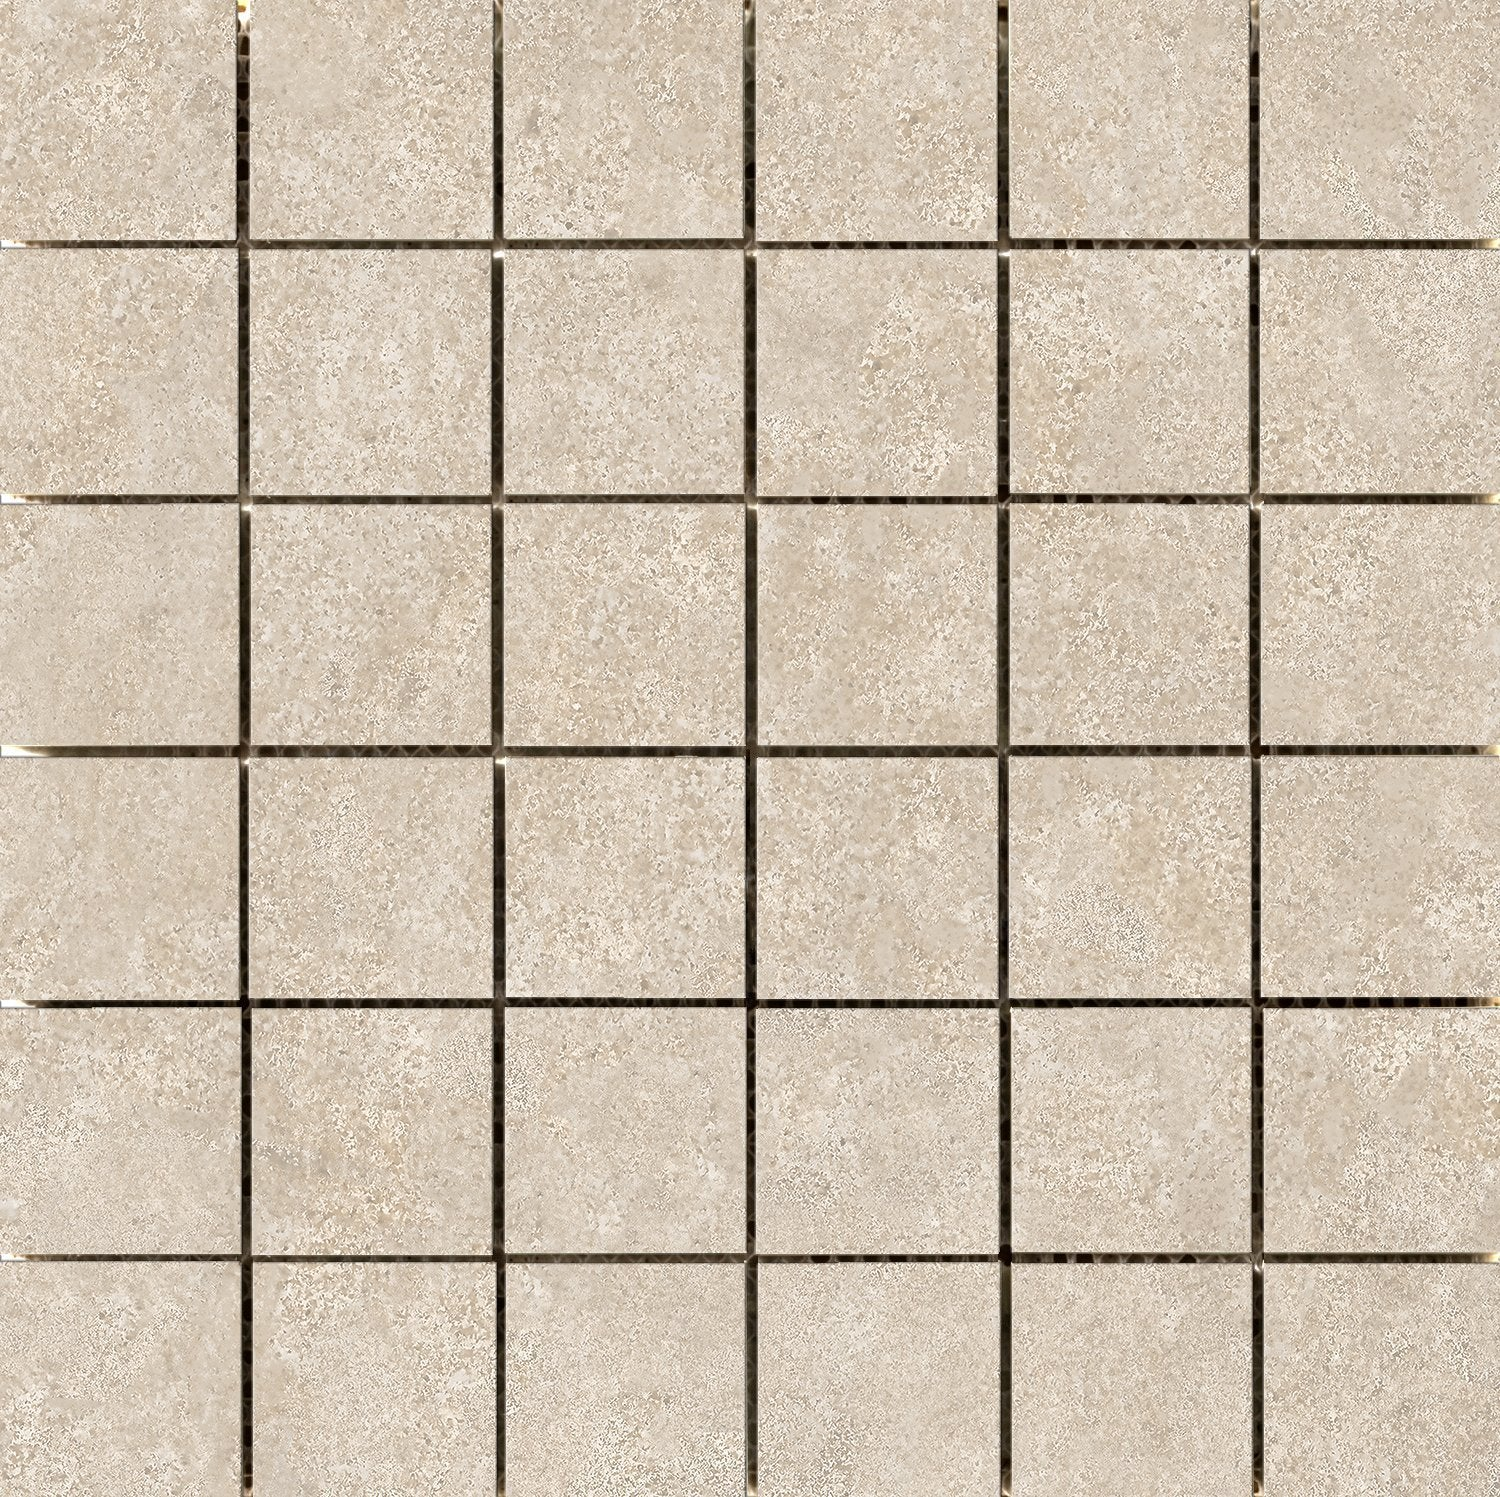 Cadiz Ceramic Mosaic Floor/Wall Tile Espera